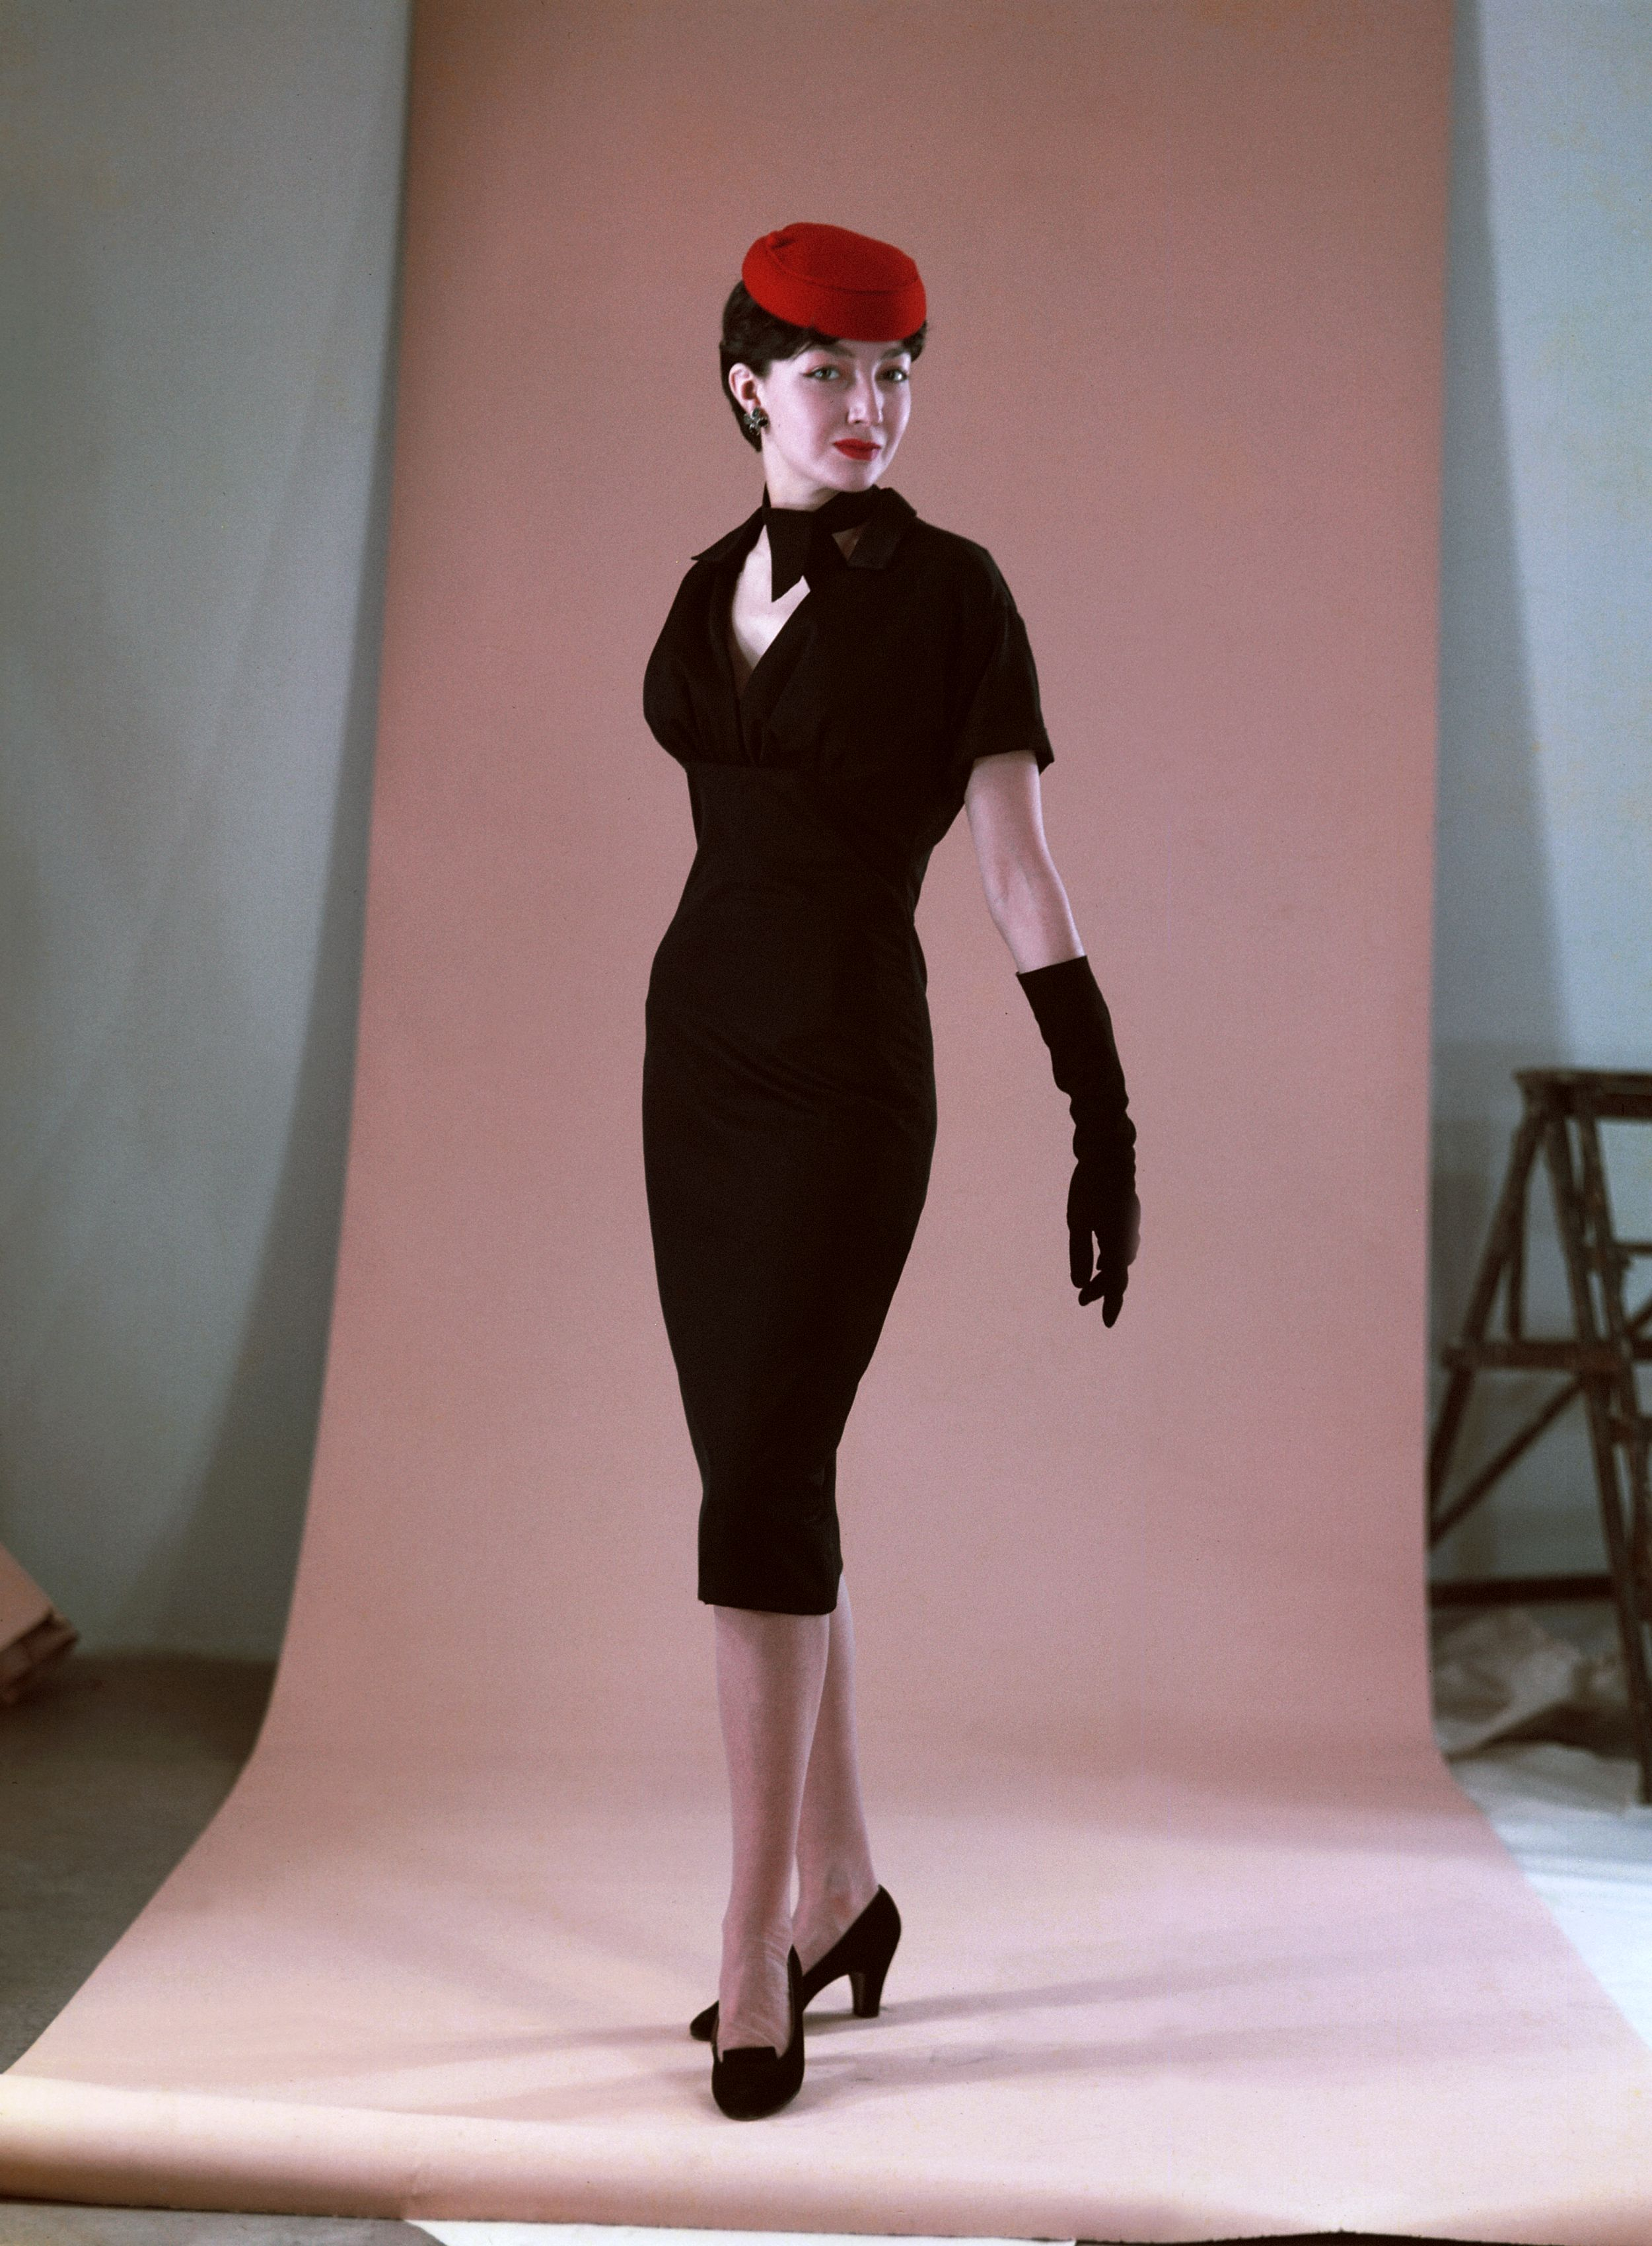 A woman wearing a fitted Black Dior Dress, shot against a light pink back drop